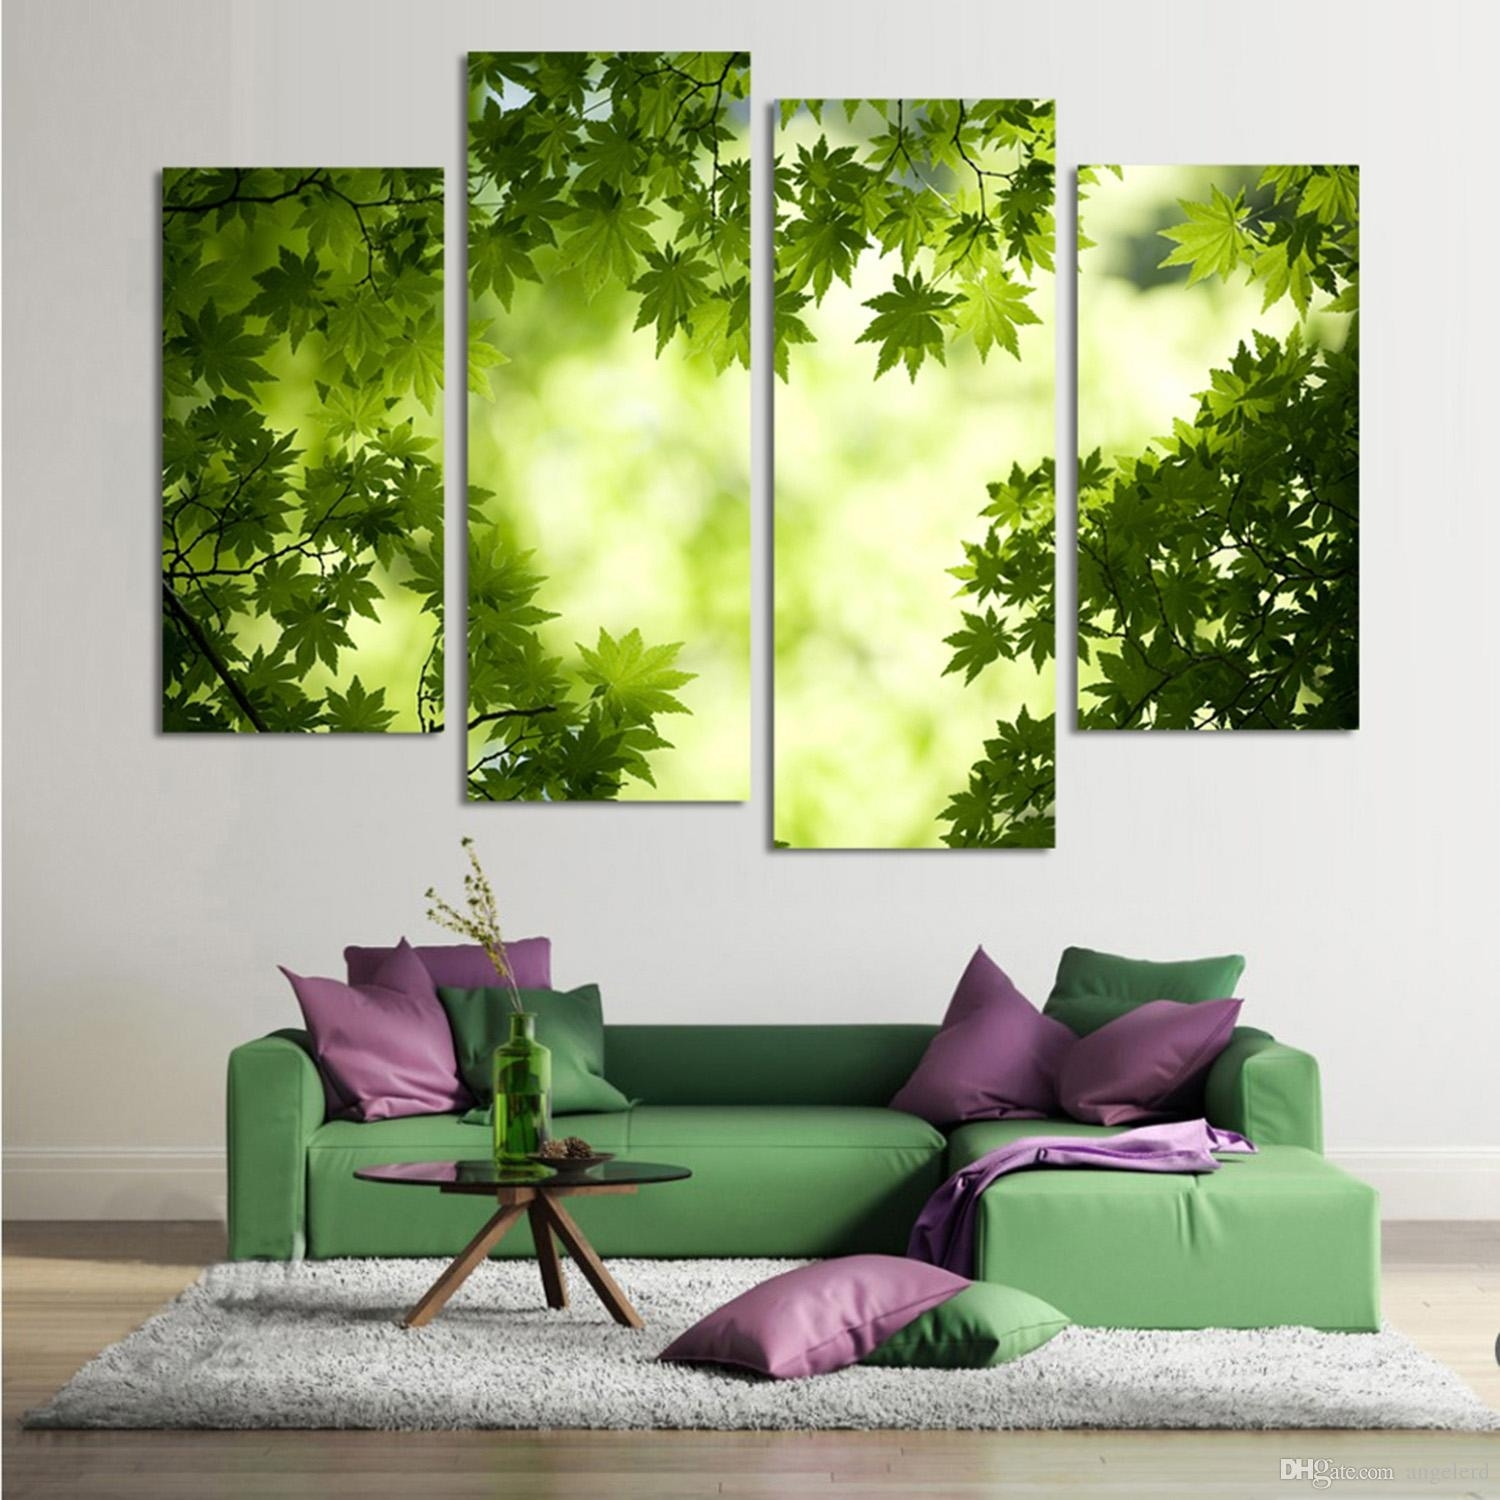 4 Panel Abstract Printed Stil Life Green Leaf Painting Canvas Art Throughout 2018 Abstract Leaves Wall Art (Gallery 17 of 20)